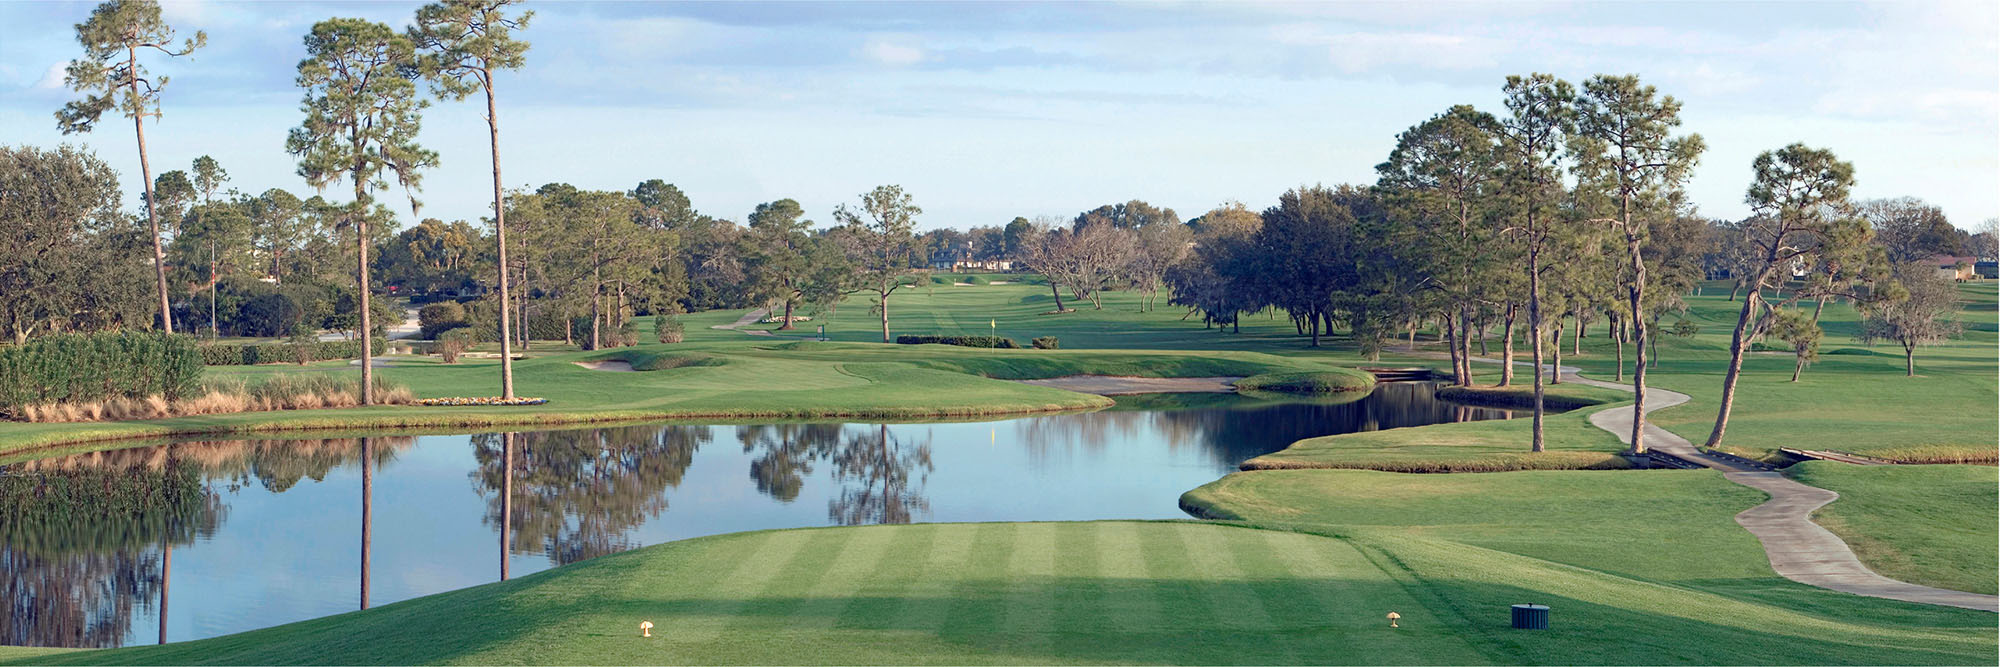 Golf Course Image - Bay Hill No. 17